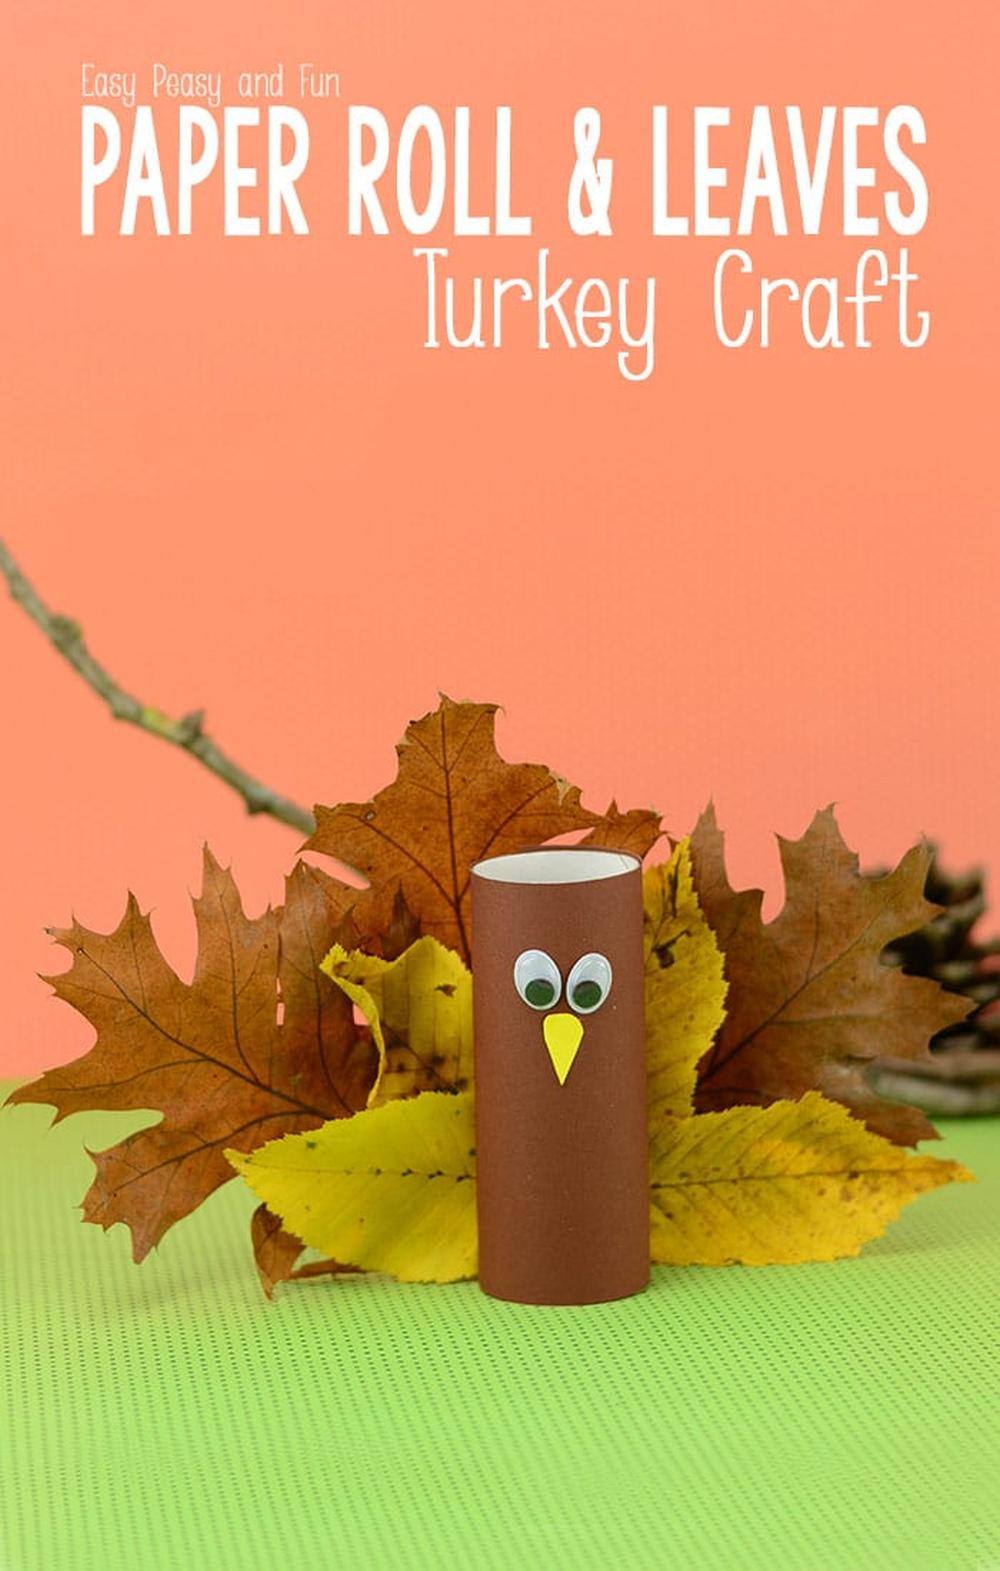 Recycled toilet paper roll turkeys thanksgiving crafts for kids